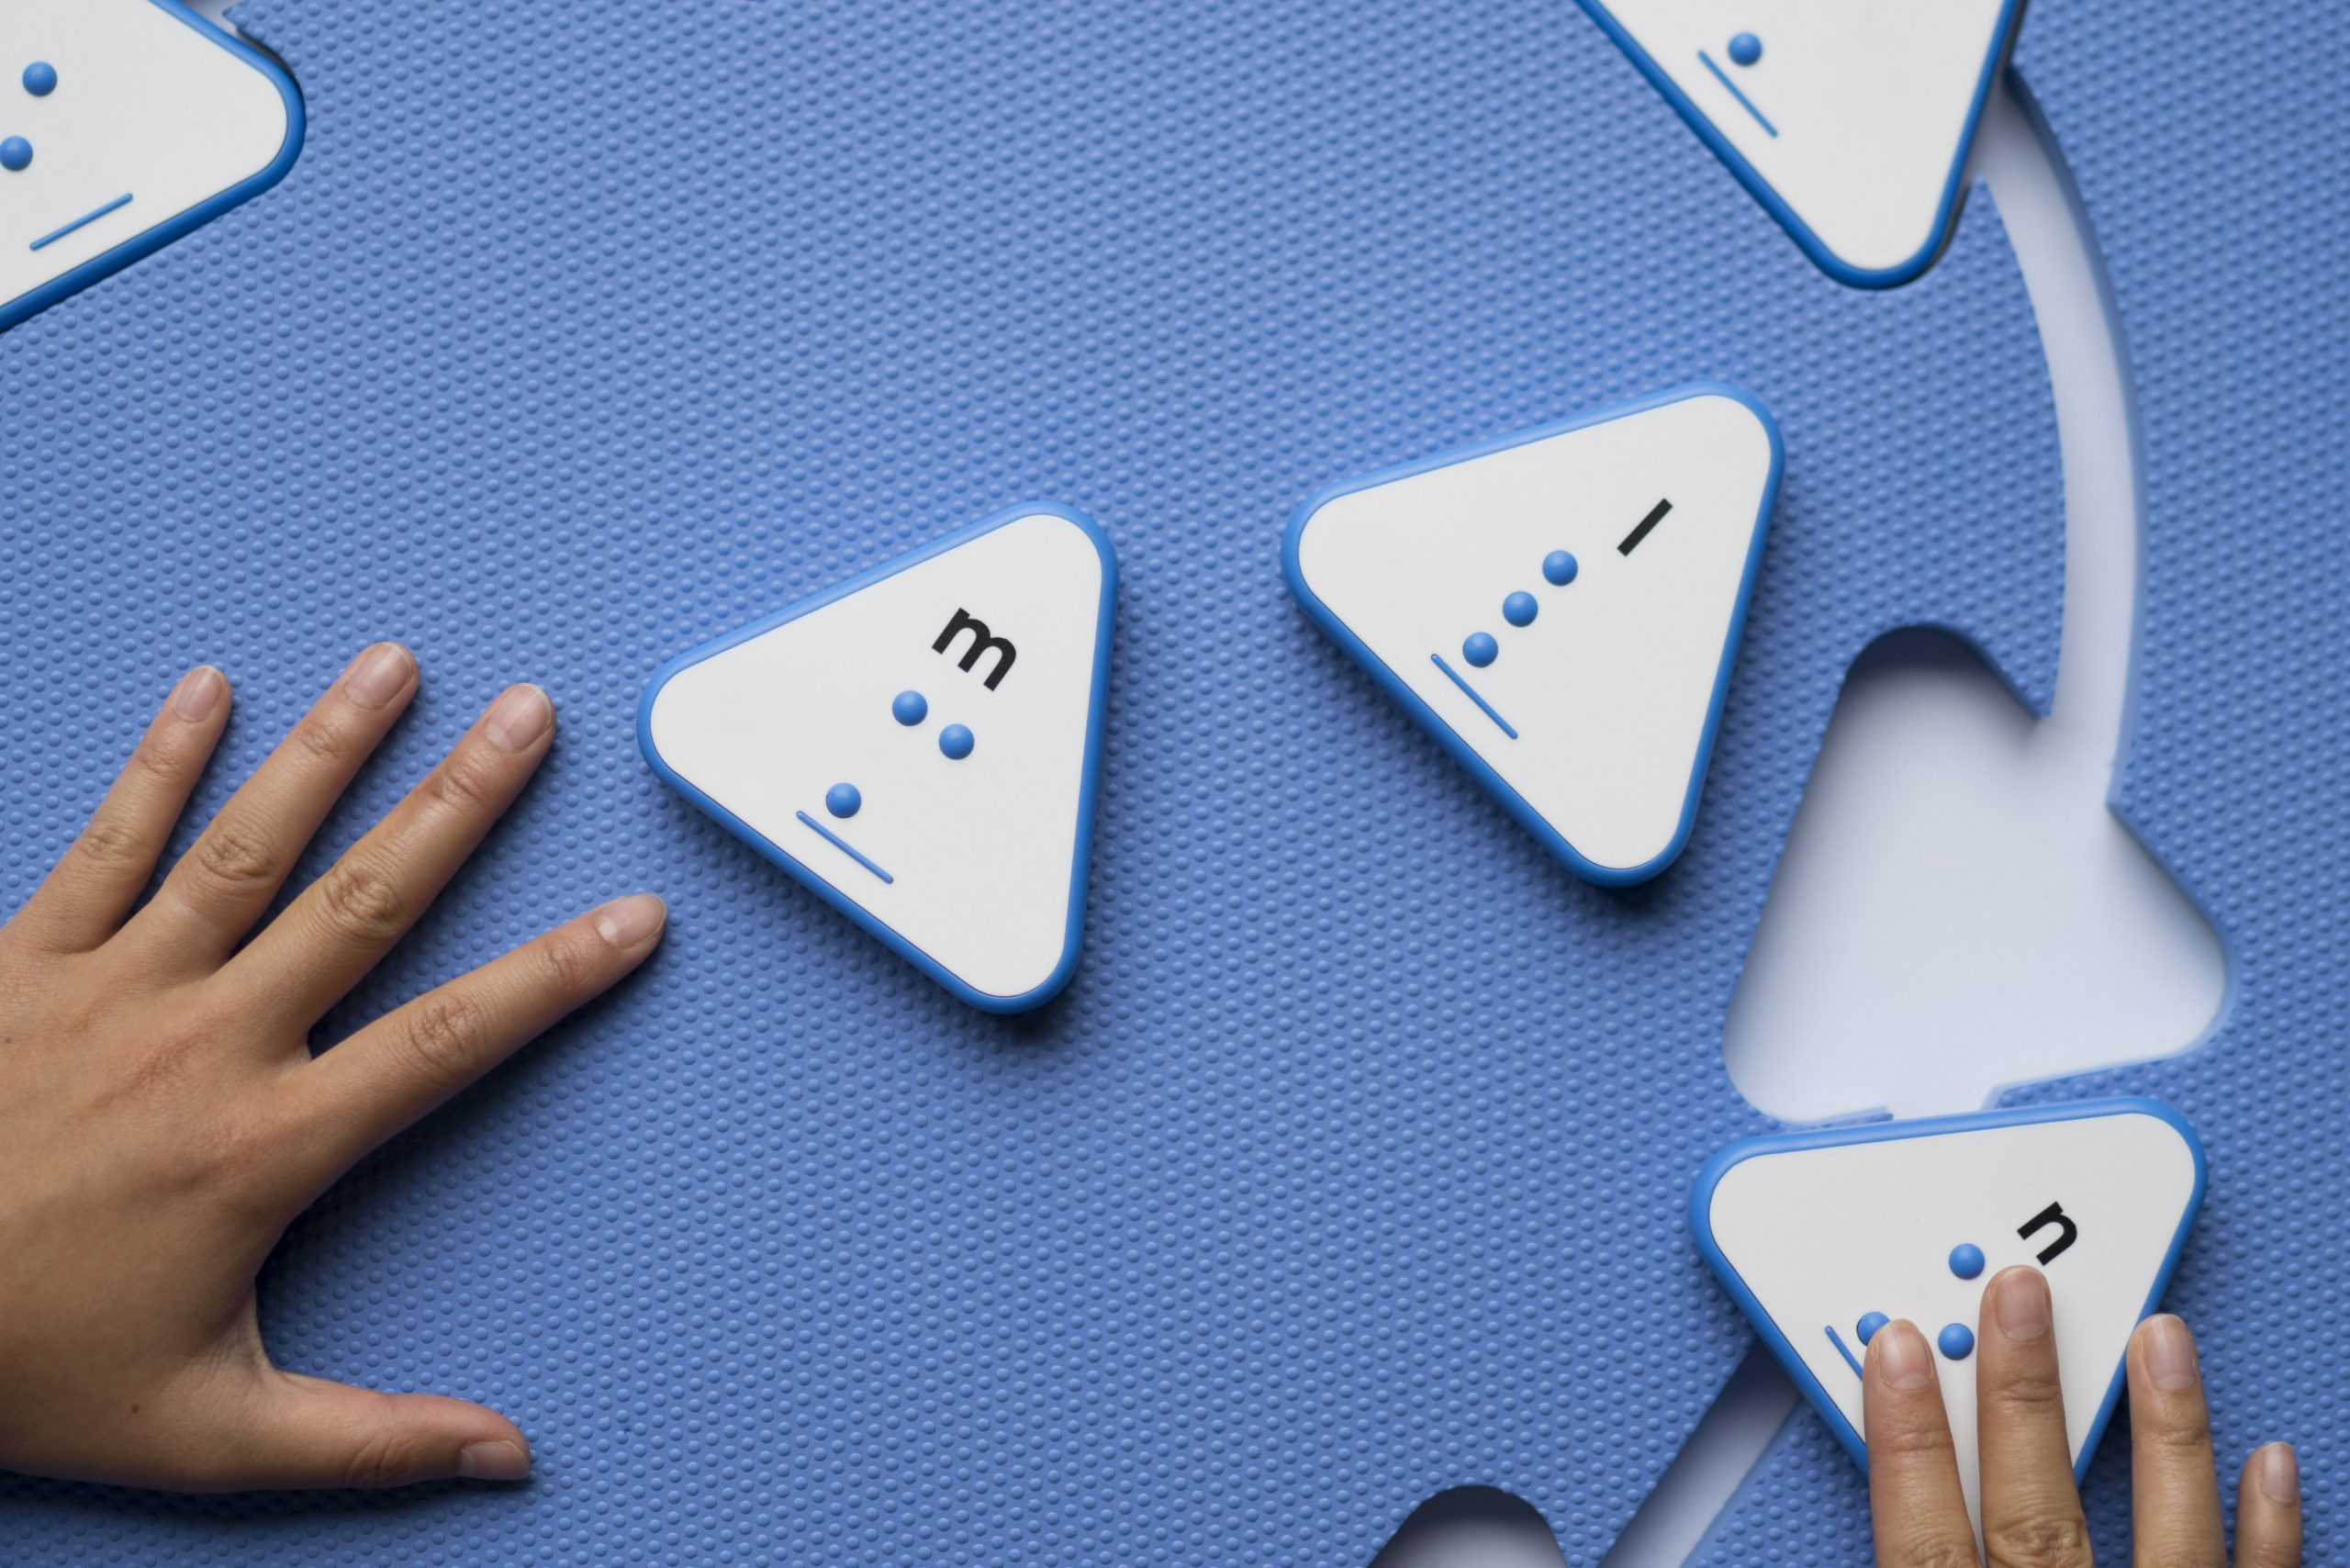 Reach and Match blue mat with braille tiles